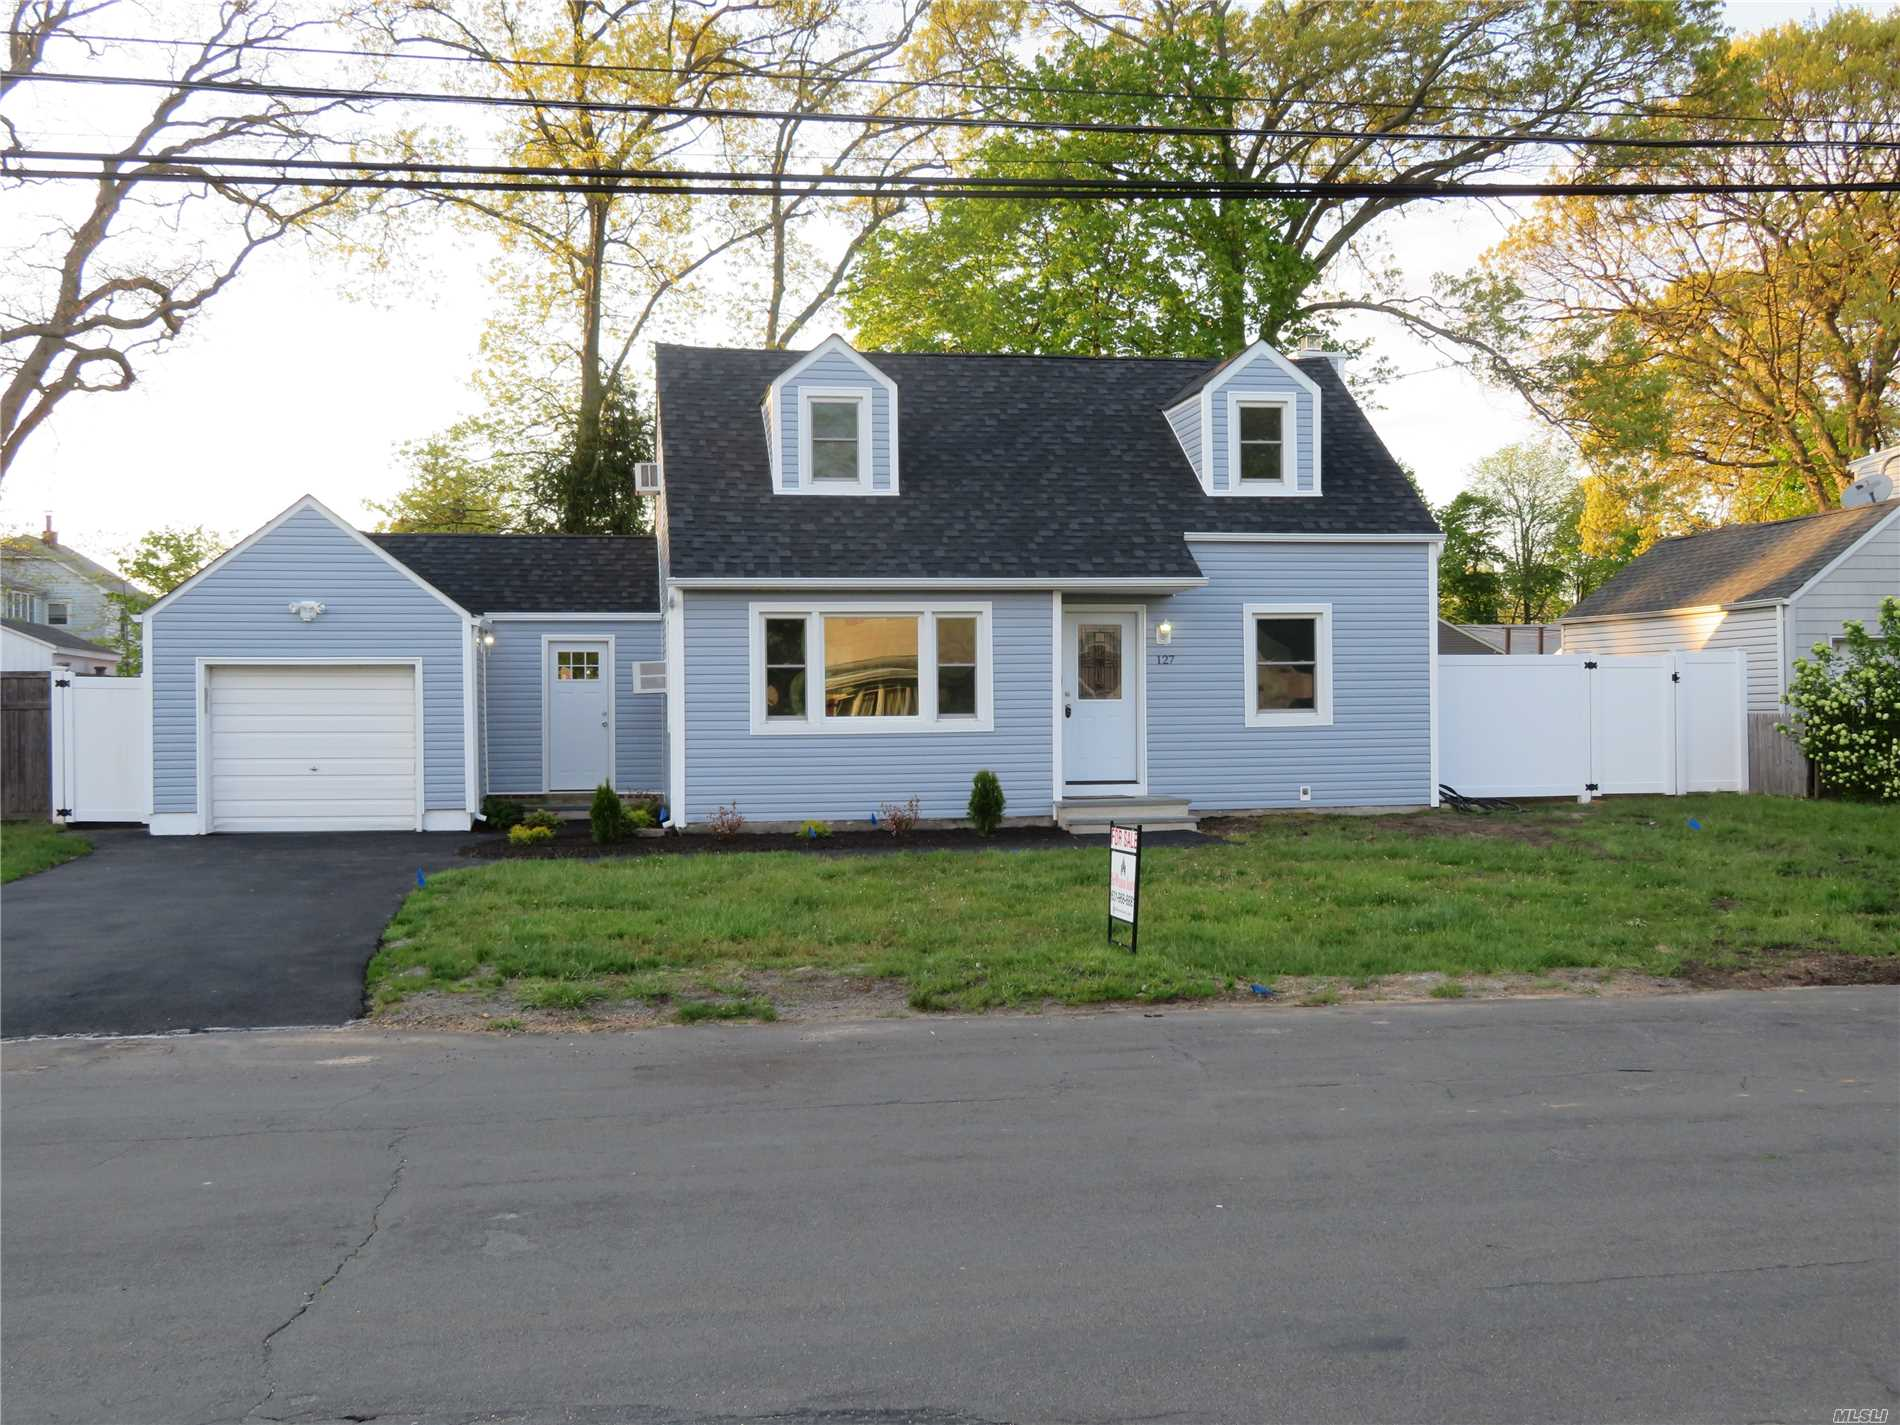 Like New, Totally Renovated, Expanded Cape with 4Br, 2 1/2 Bath, Everything New, Roof, Windows, Siding, New Kitchen with Bleach Oak Cabinets & Granite Counters,  Center Island in KIt, 3 New Ceramic Baths, Oak Floors Throughout, Ceramic Tile Basement, Formal DR, 3 A/C Units, Bluestone Entrance & 1 Car Garage, Fenced Yard. Too Much to List, A Must See!!